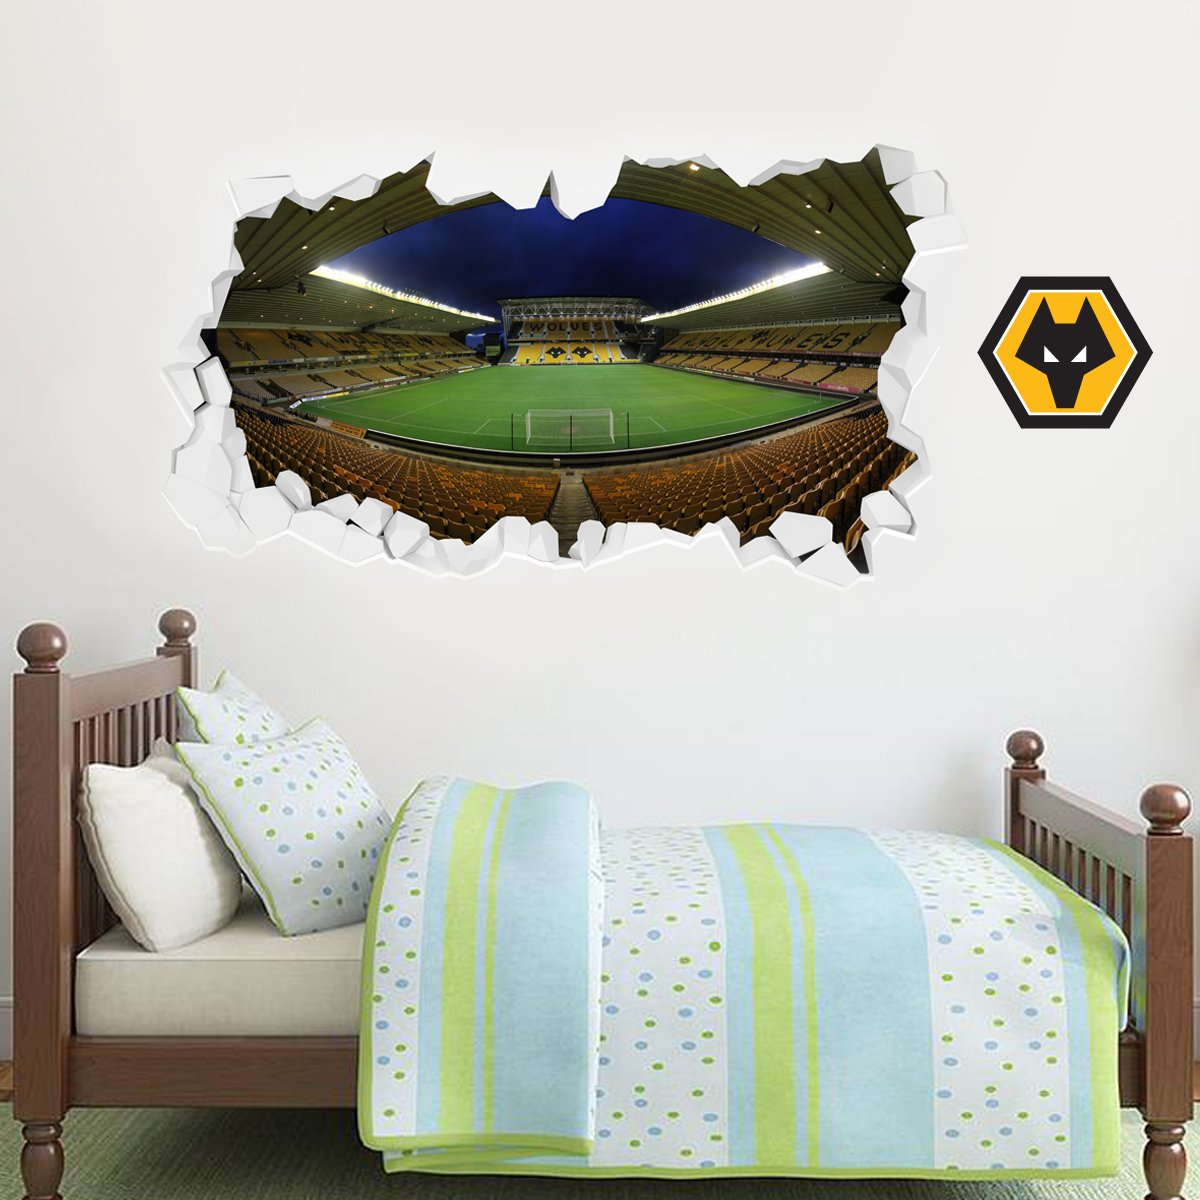 Wolverhampton Wanderers Football Club Molineux Stadium Smashed Wall Art Sticker Mural & x10 Wolves Decals Set (60cm x 30cm)